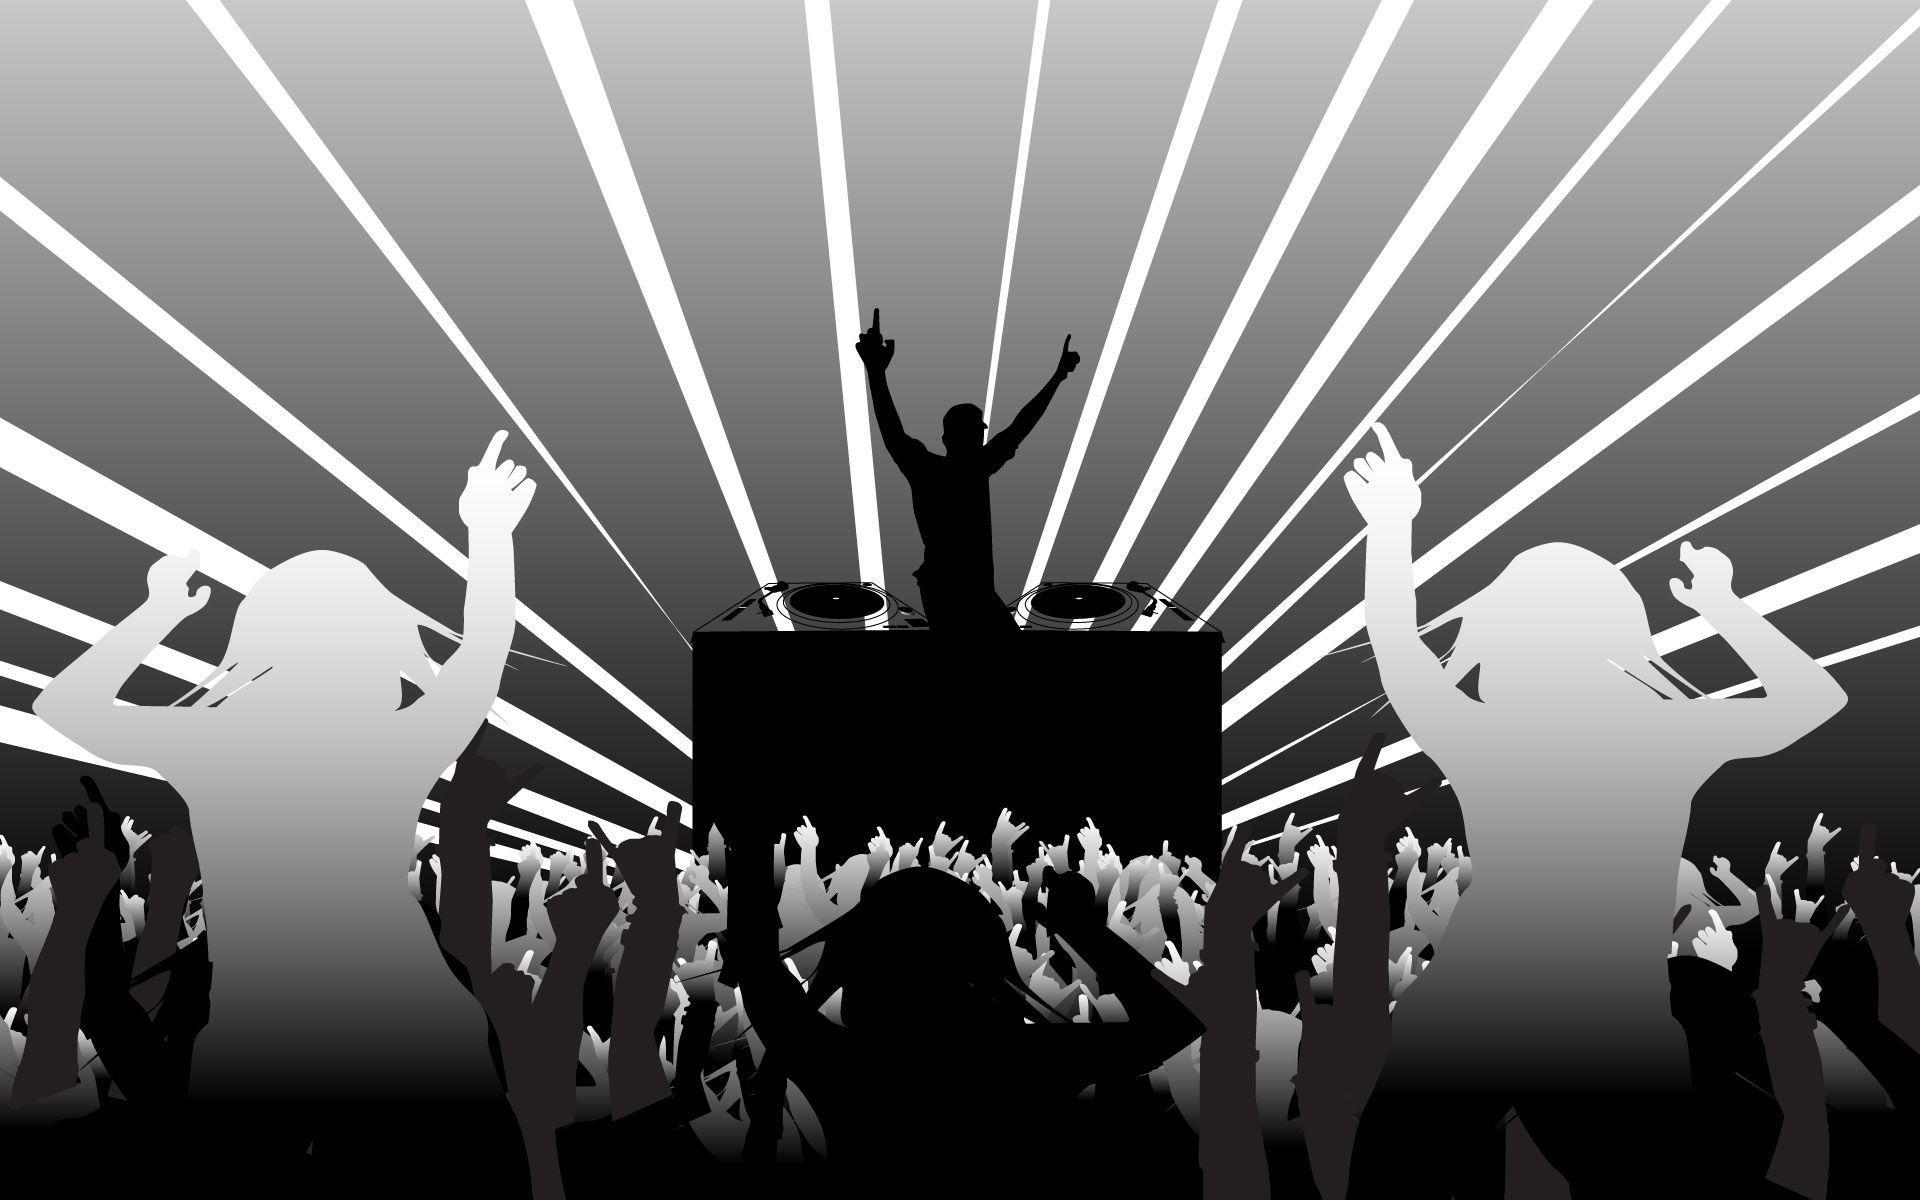 Cool Party Wallpapers Images amp Pictures   Becuo 1920x1200